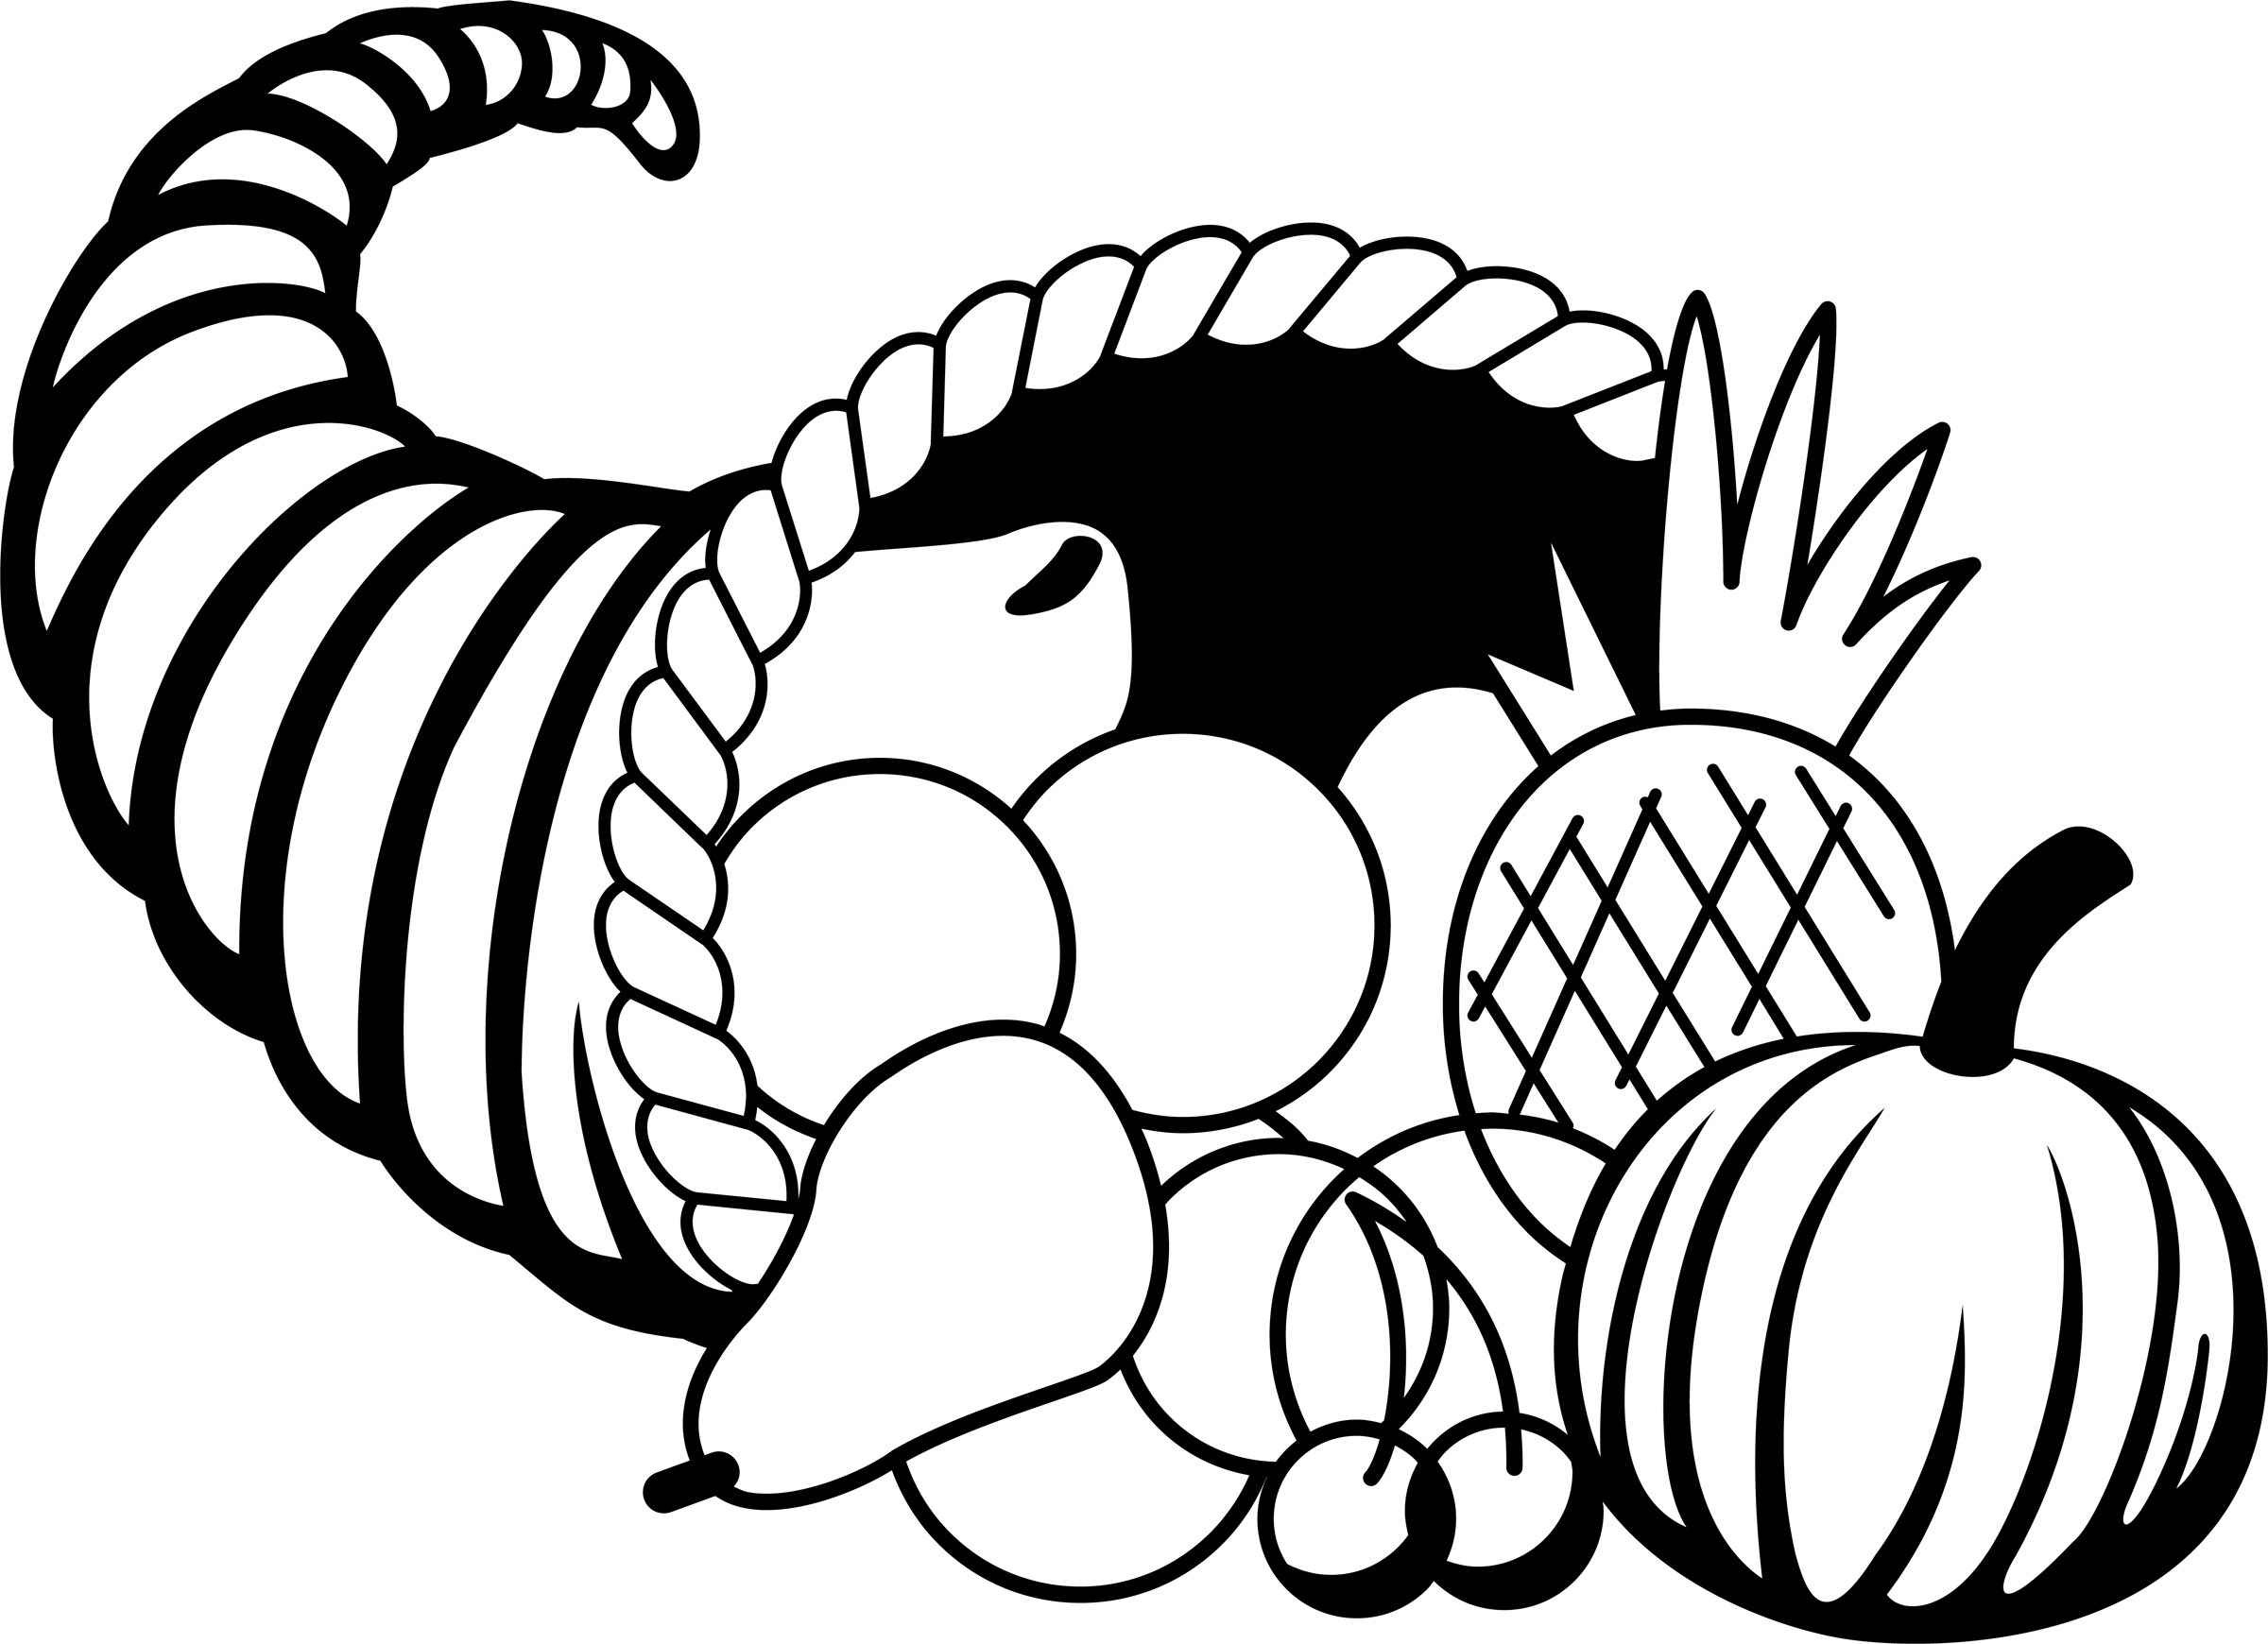 Thanksgiving clipart black and white 6 » Clipart Portal.